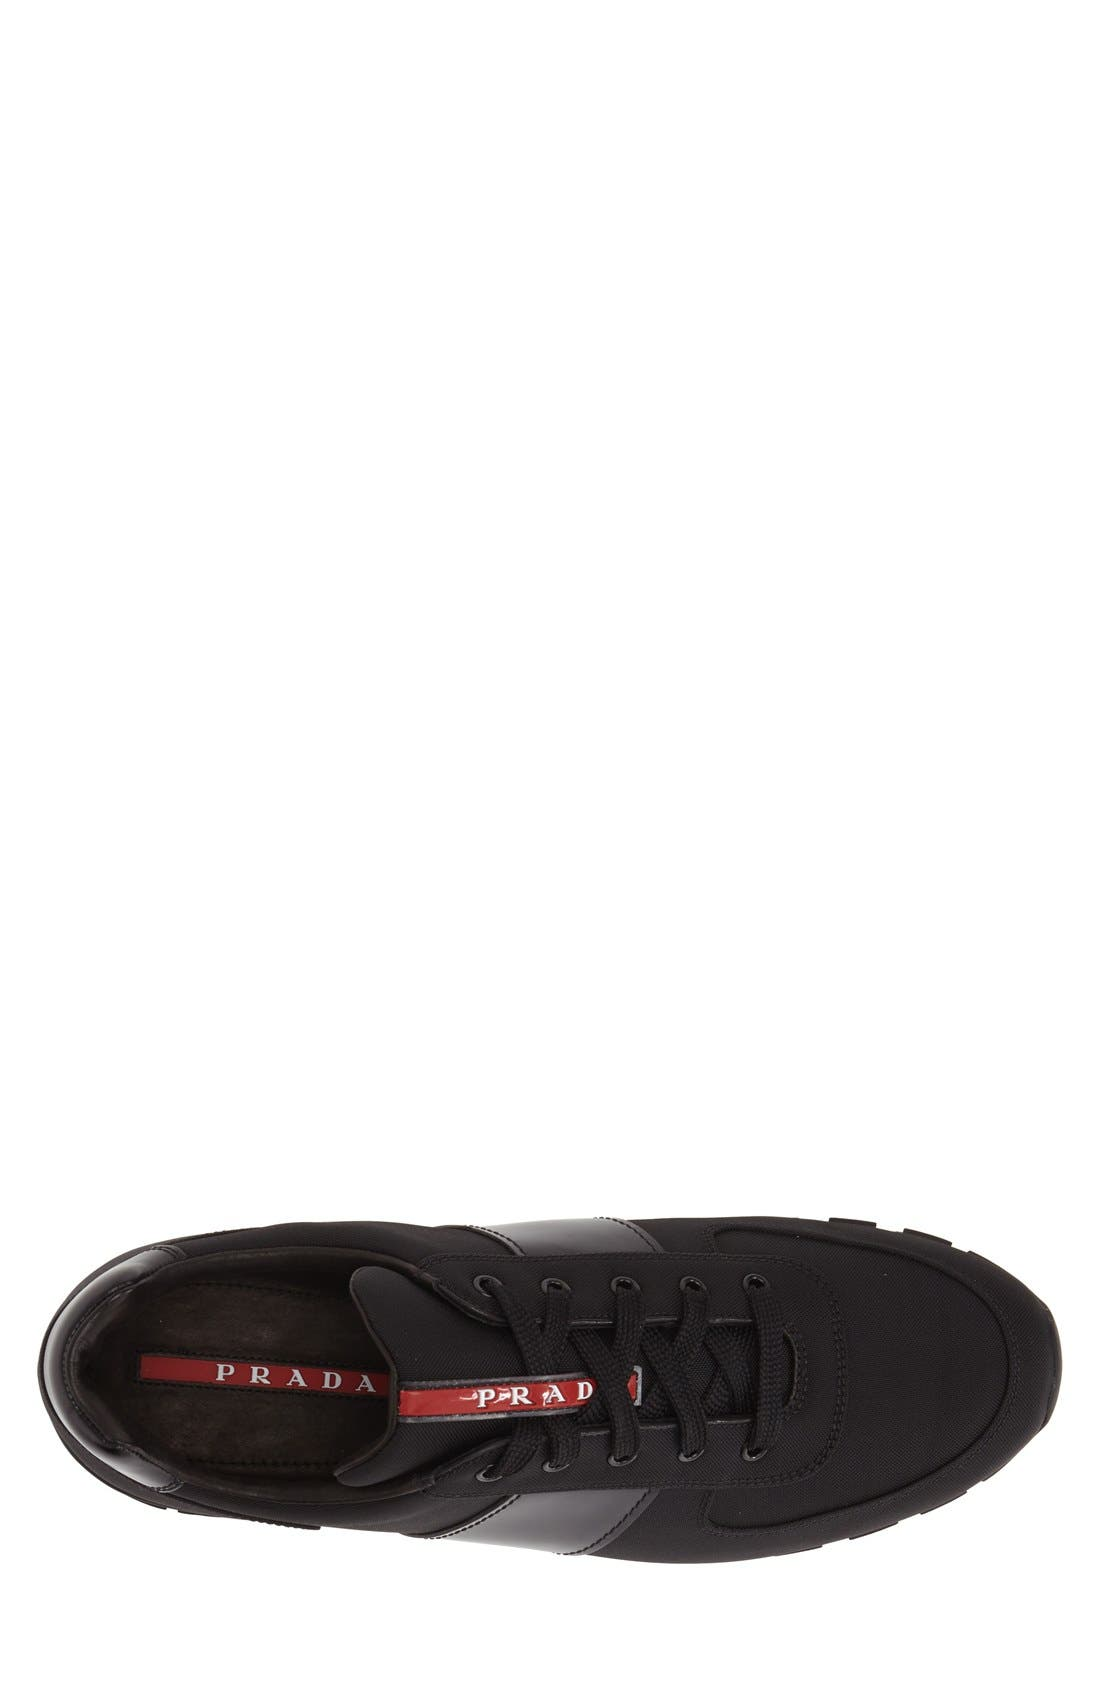 PRADA LINEA ROSSA,                             Runner Sneaker,                             Alternate thumbnail 3, color,                             001